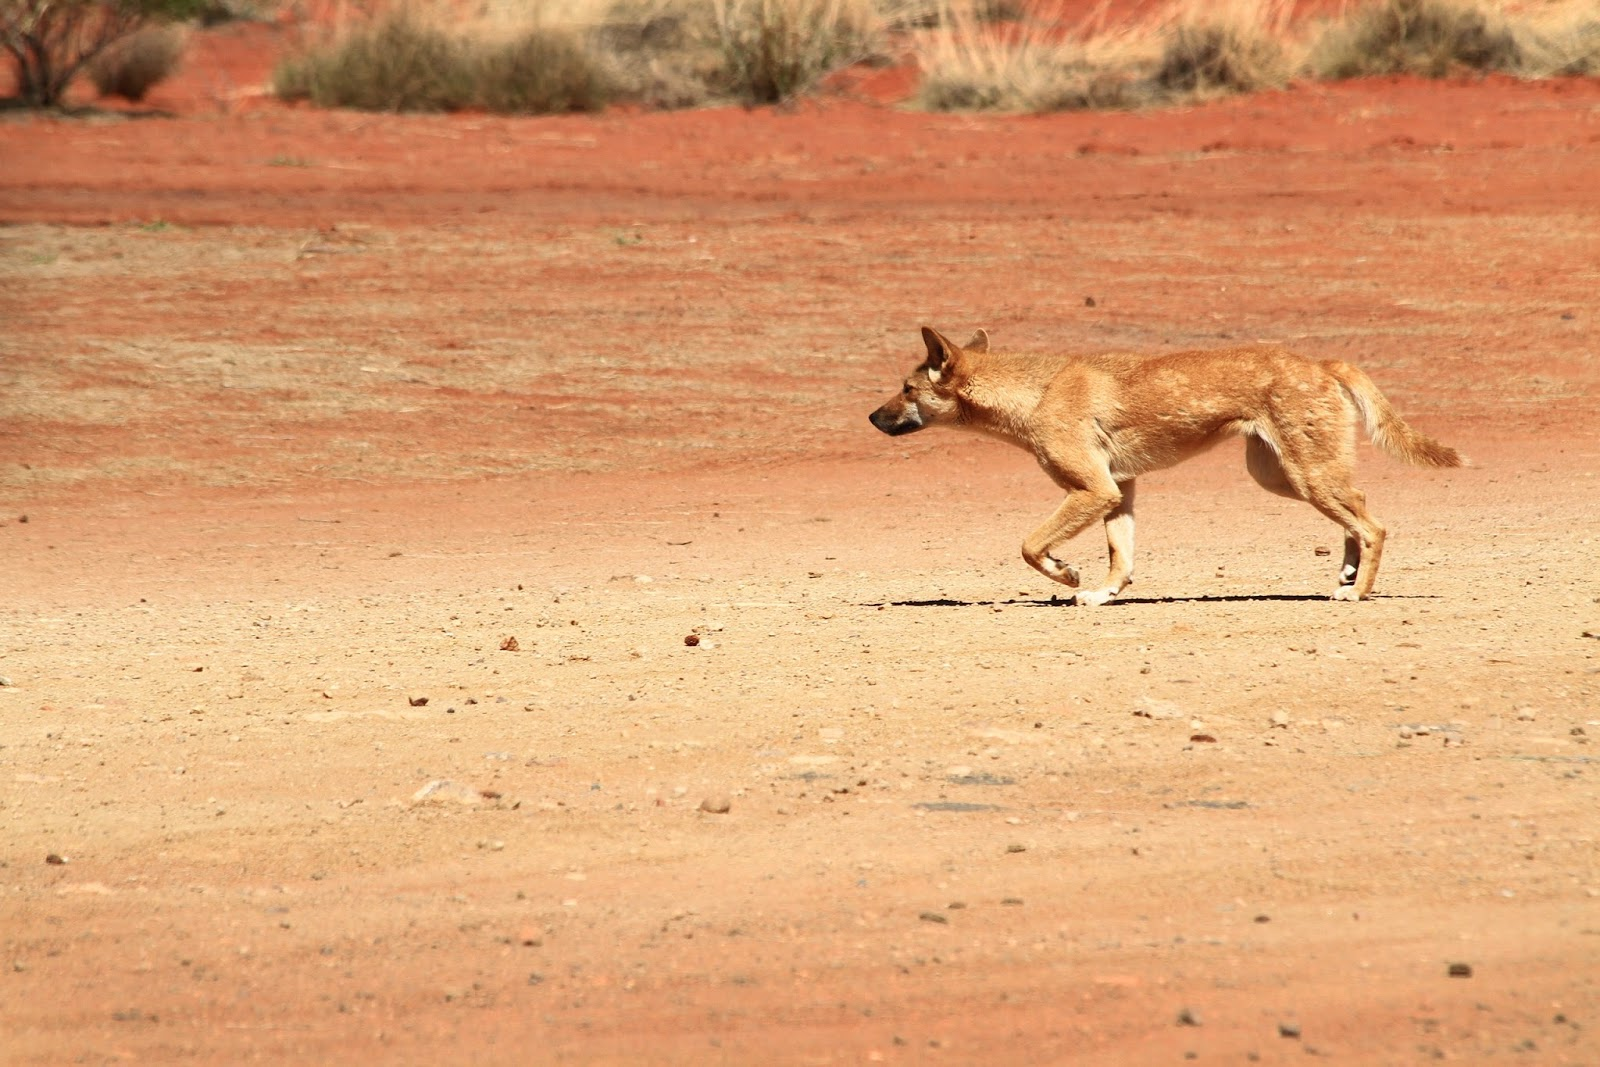 Dingo the Australian wild dog.